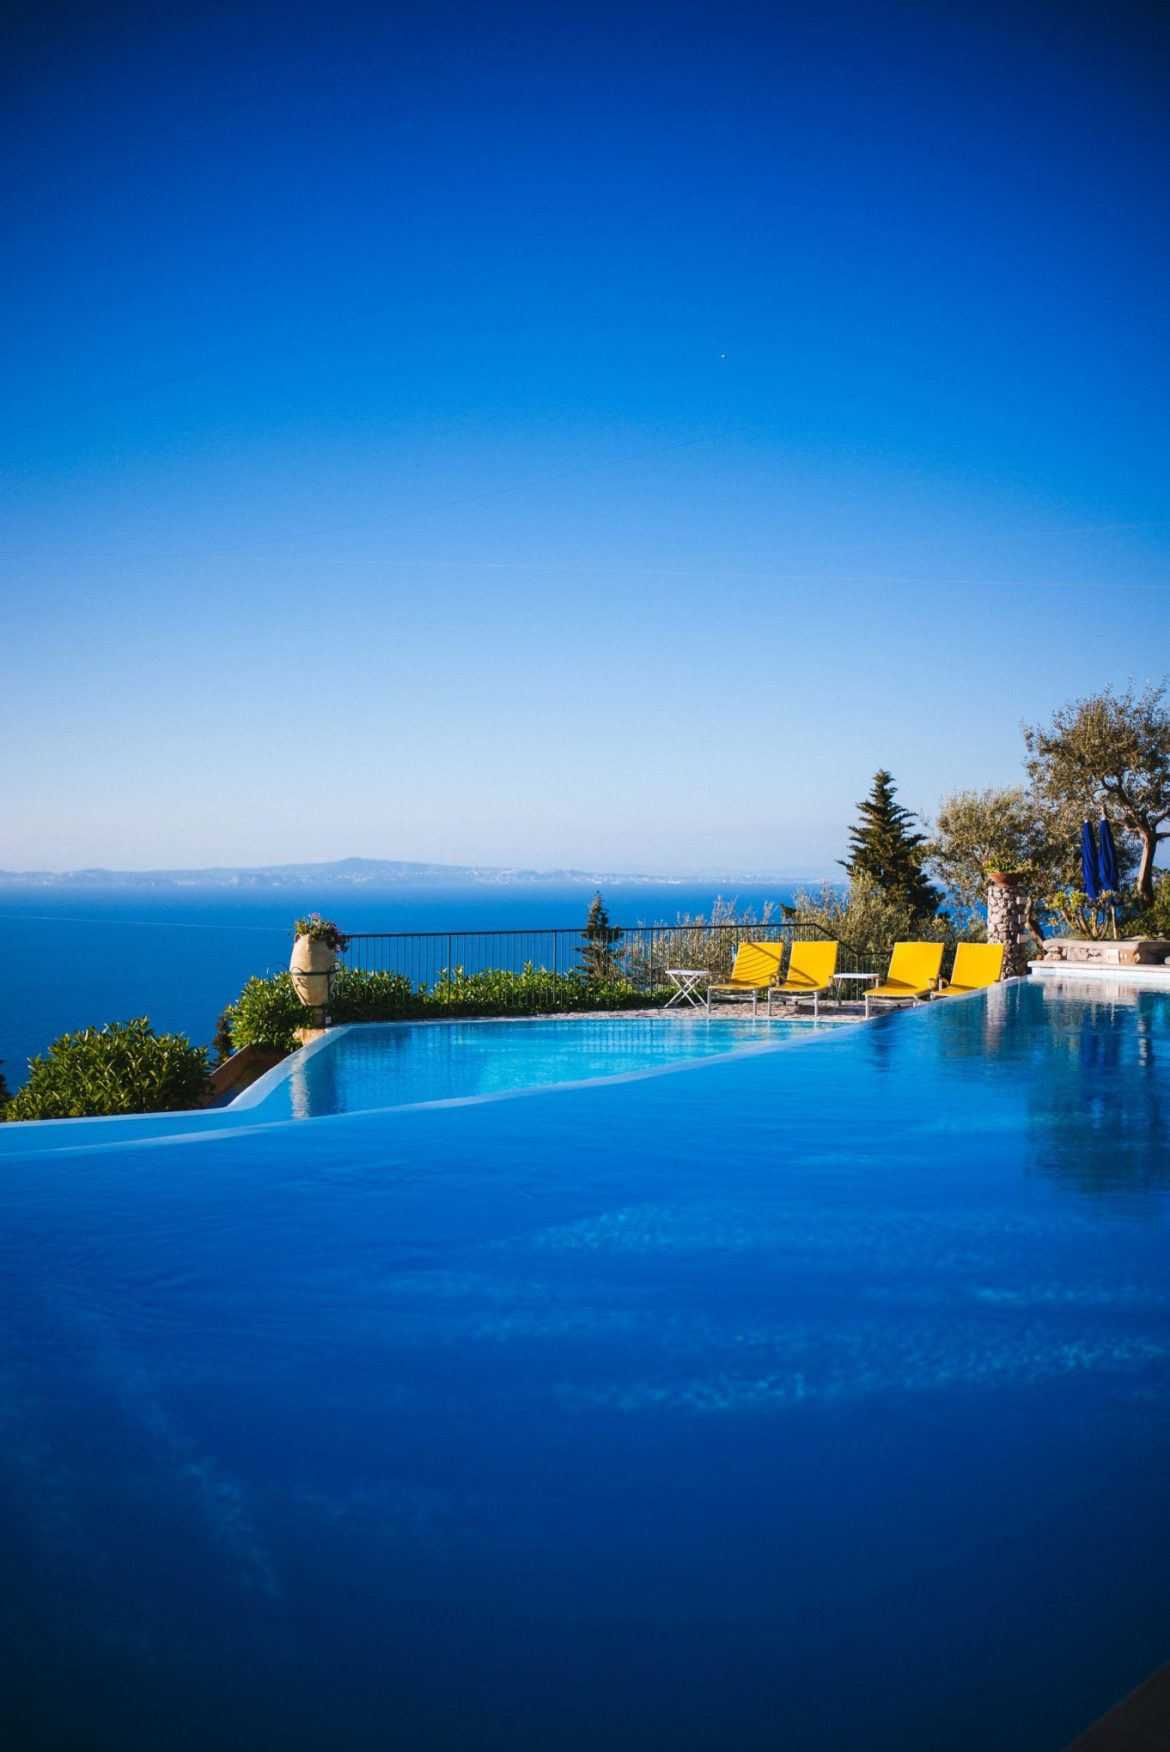 Relax by a double infinity pool at Hotel Caesar Augustus Capri Italy on your Amalfi Coast vacation, The Taste Edit